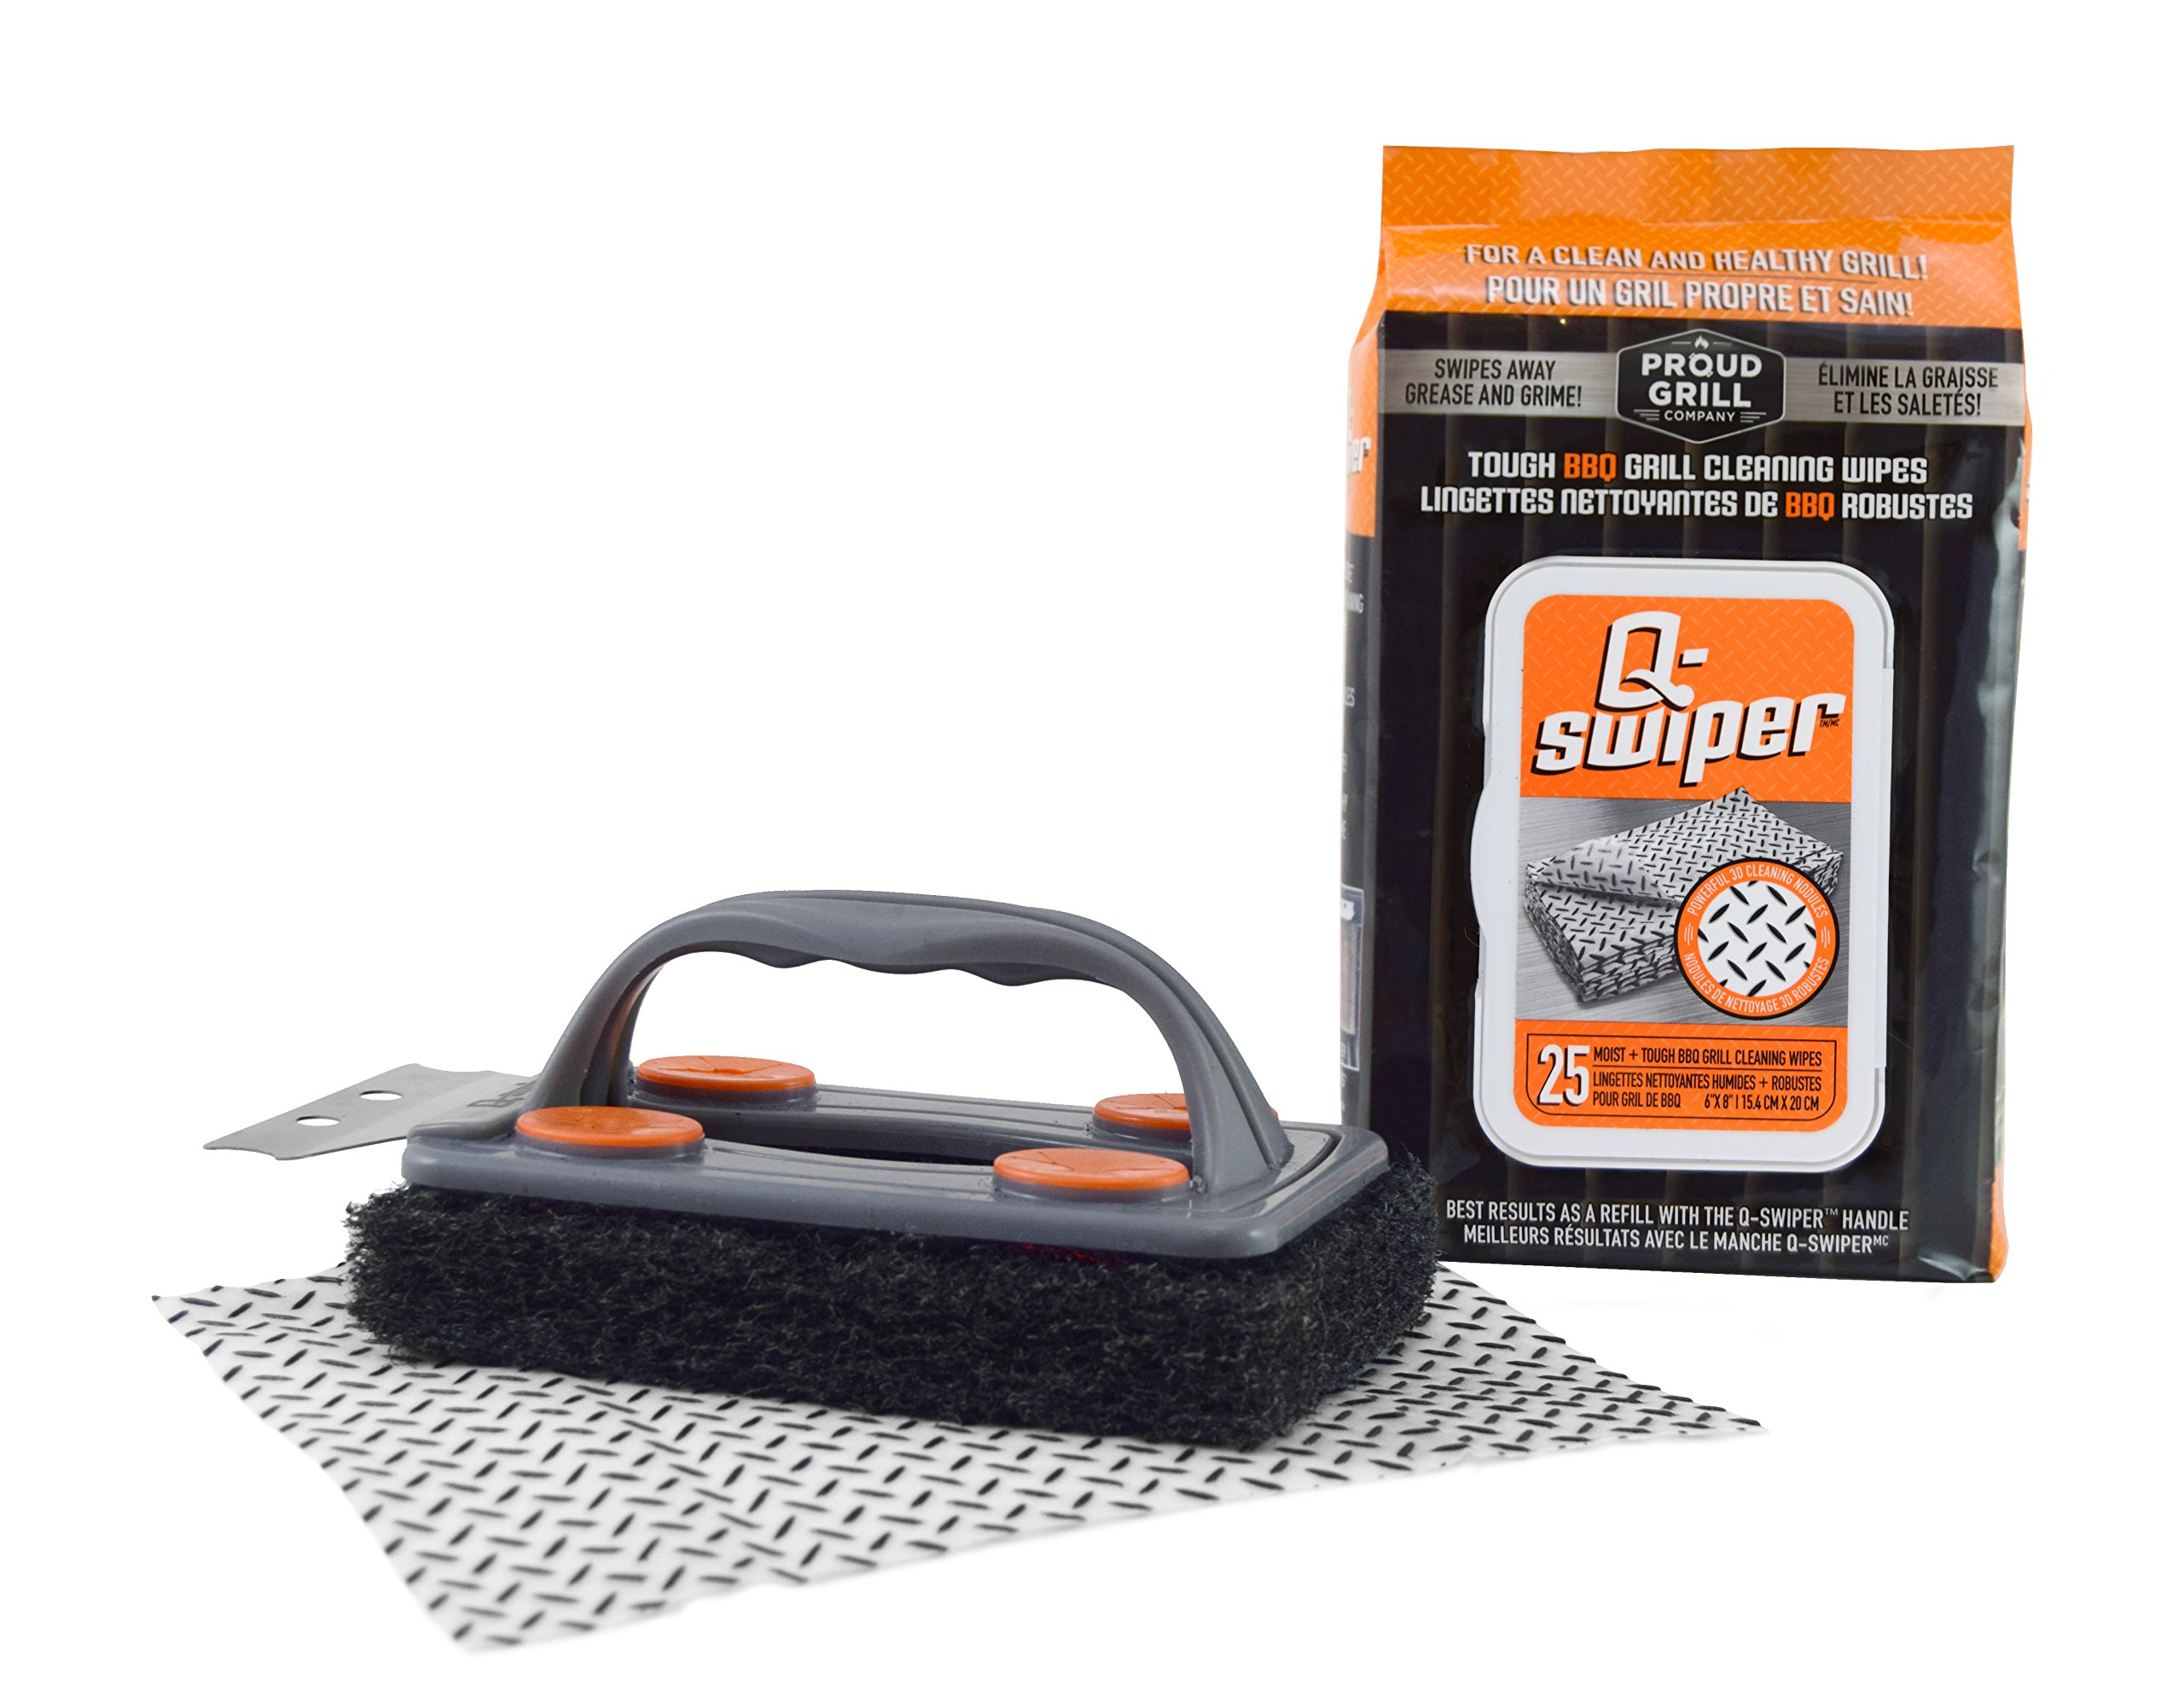 Q-Swiper BBQ Grill Brush Cleaner Set - 1 Grill Brush with Scraper and 25 BBQ Grill Cleaning Wipes. Bristle Free & Wire Free. Safe Way to Remove Grease and Grime for A Clean and Healthy Grill!